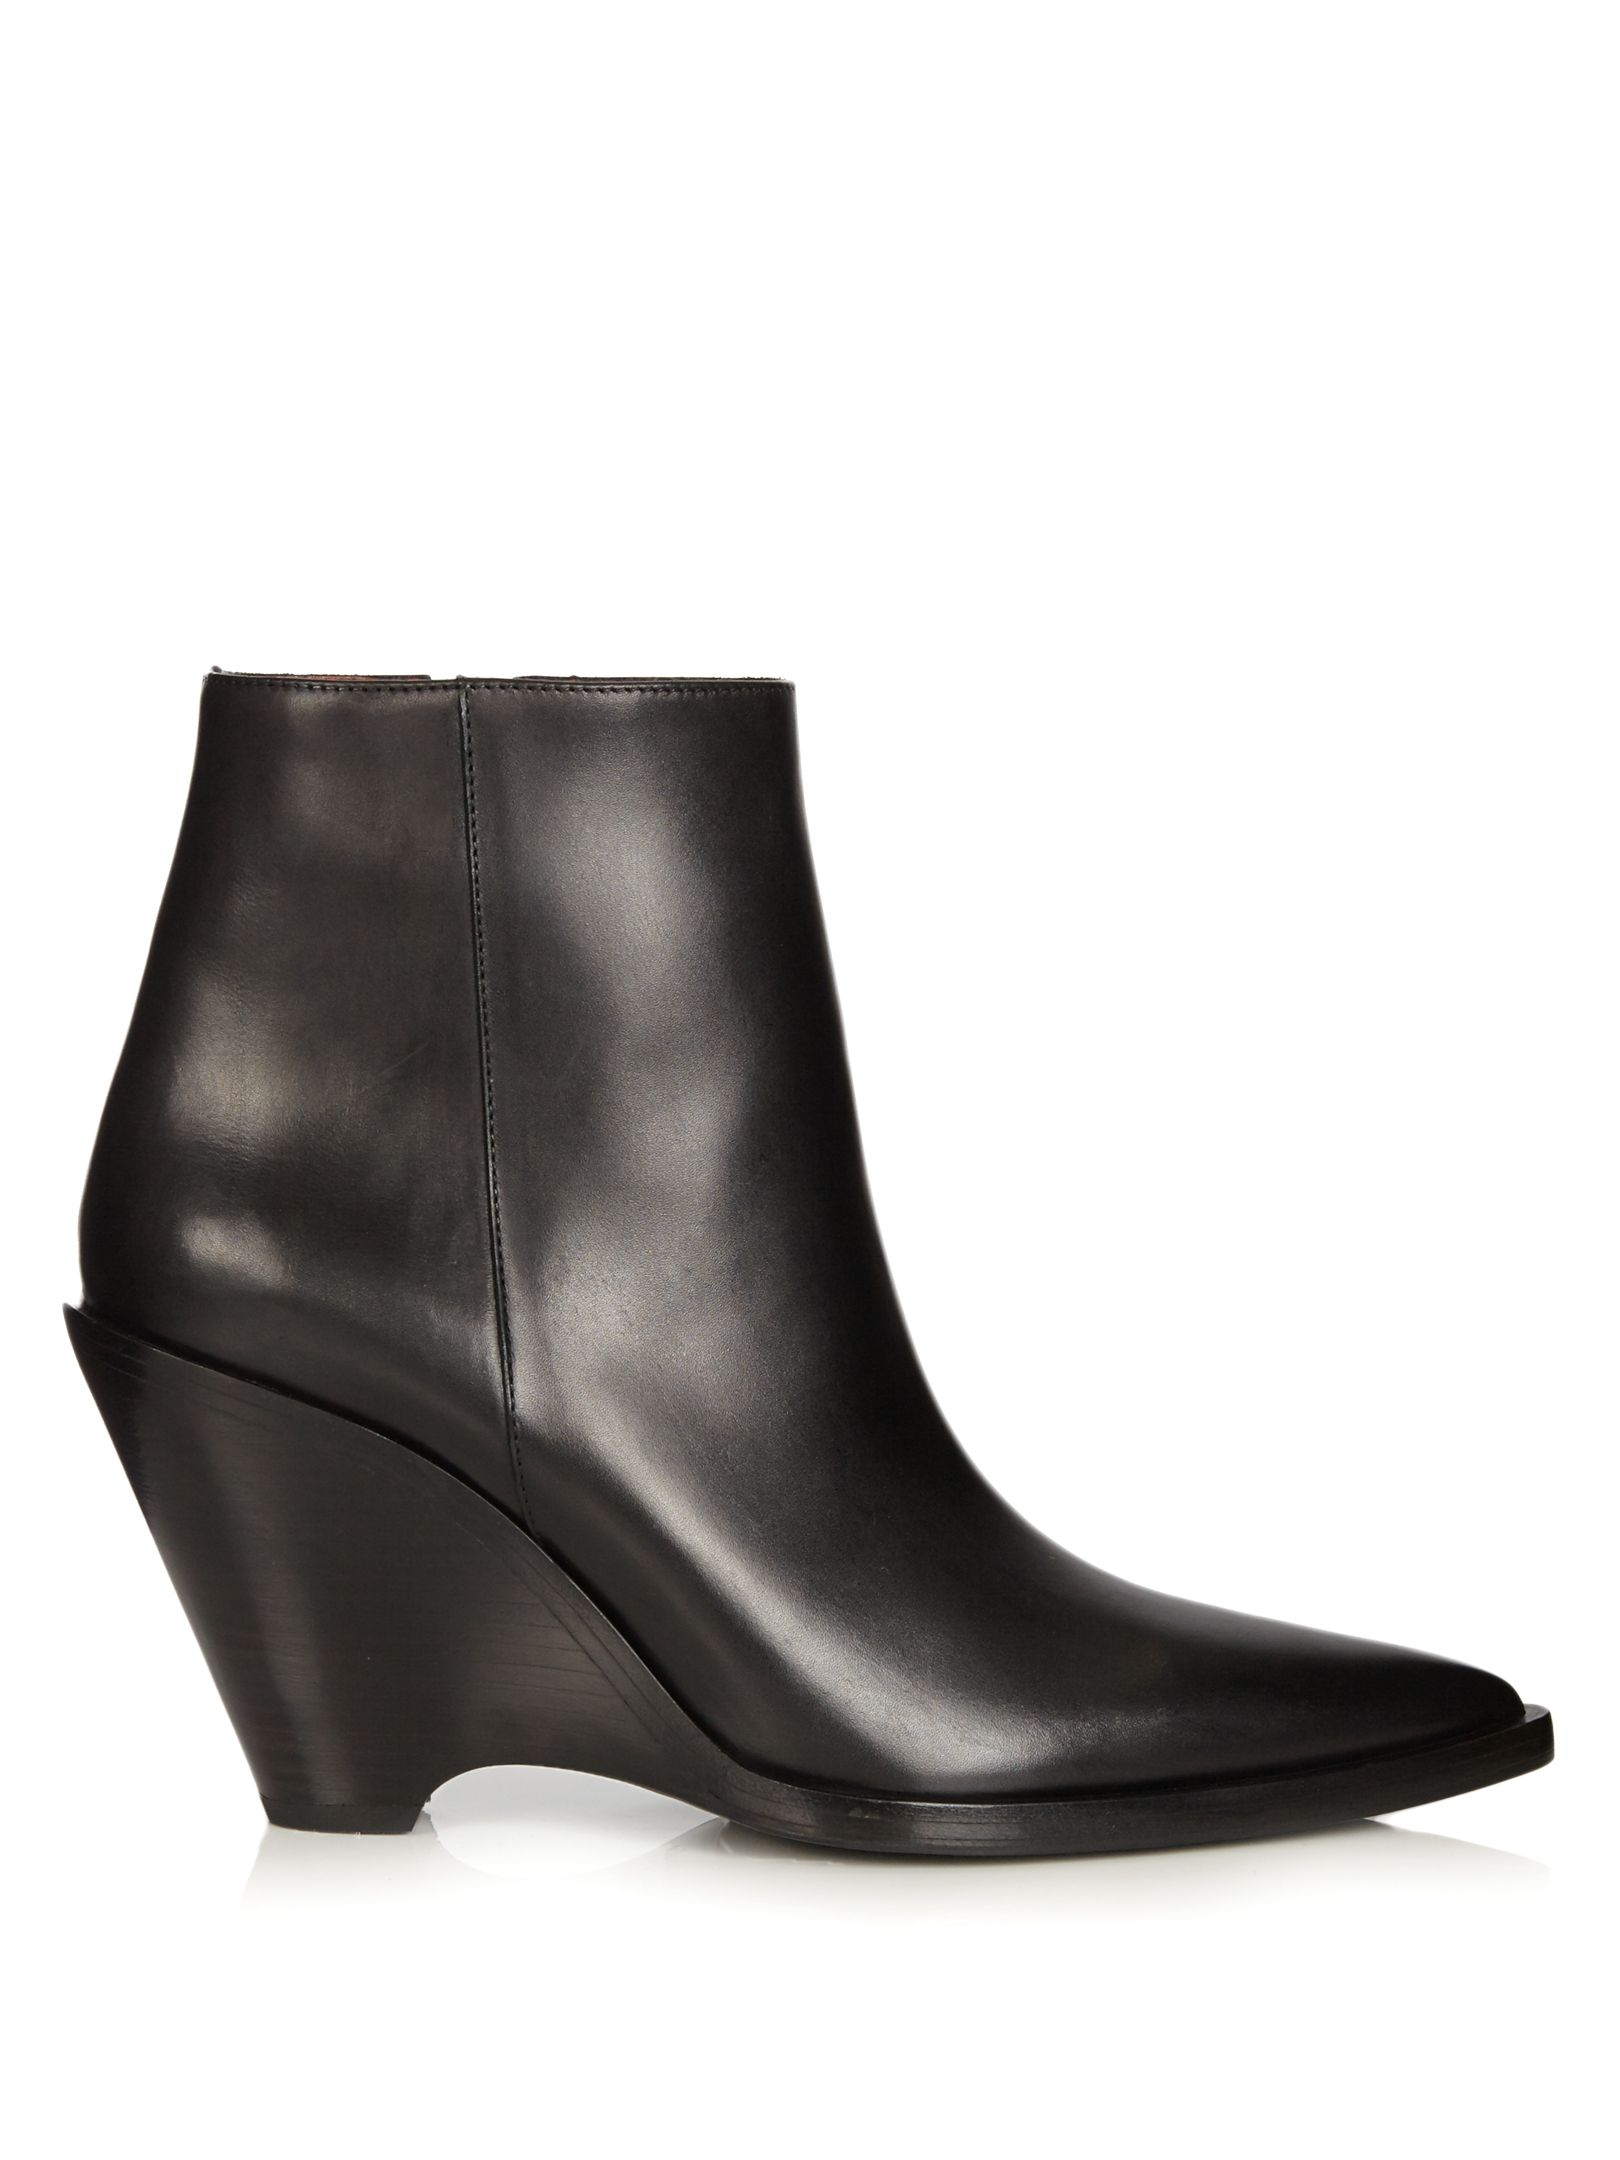 c1736503462 Caroline leather ankle boots | Acne Studios | MATCHESFASHION.COM US ...